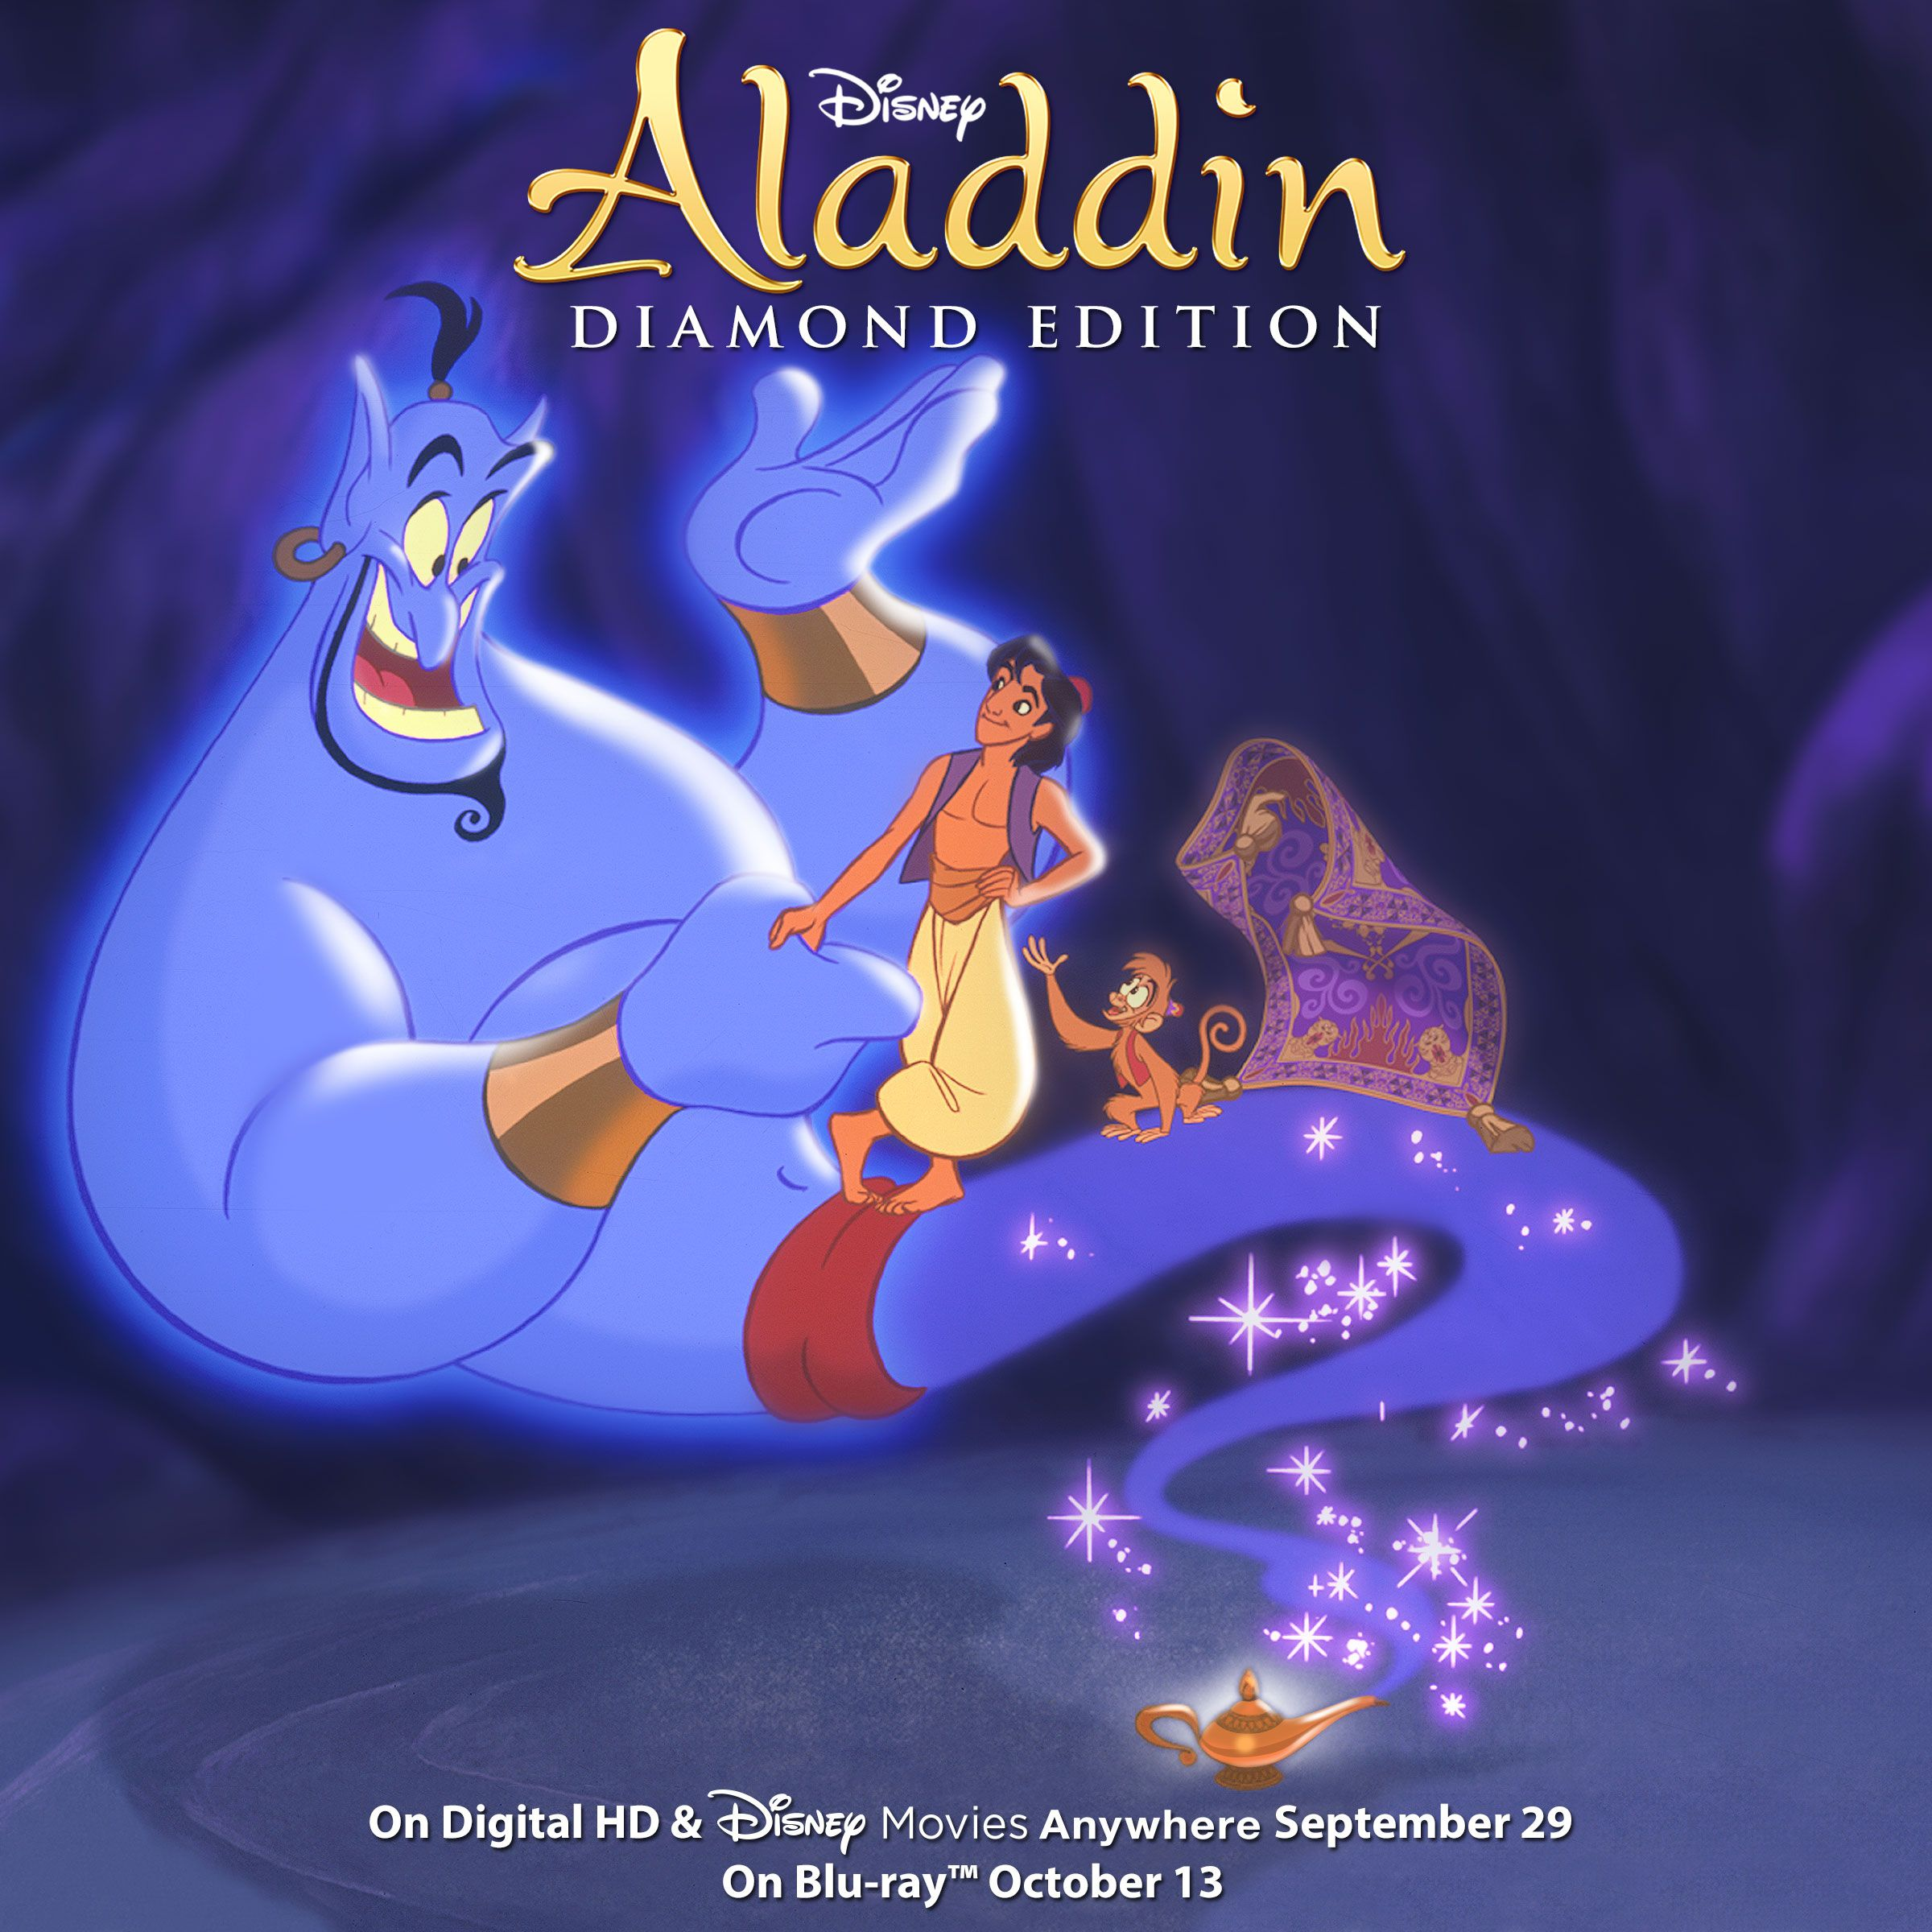 What a wish come true! Aladdin Diamond Edition is coming to Blu-ray, Digital HD and Disney Movies Anywhere. Pre-order today: http://movies.disney.com/aladdin/products